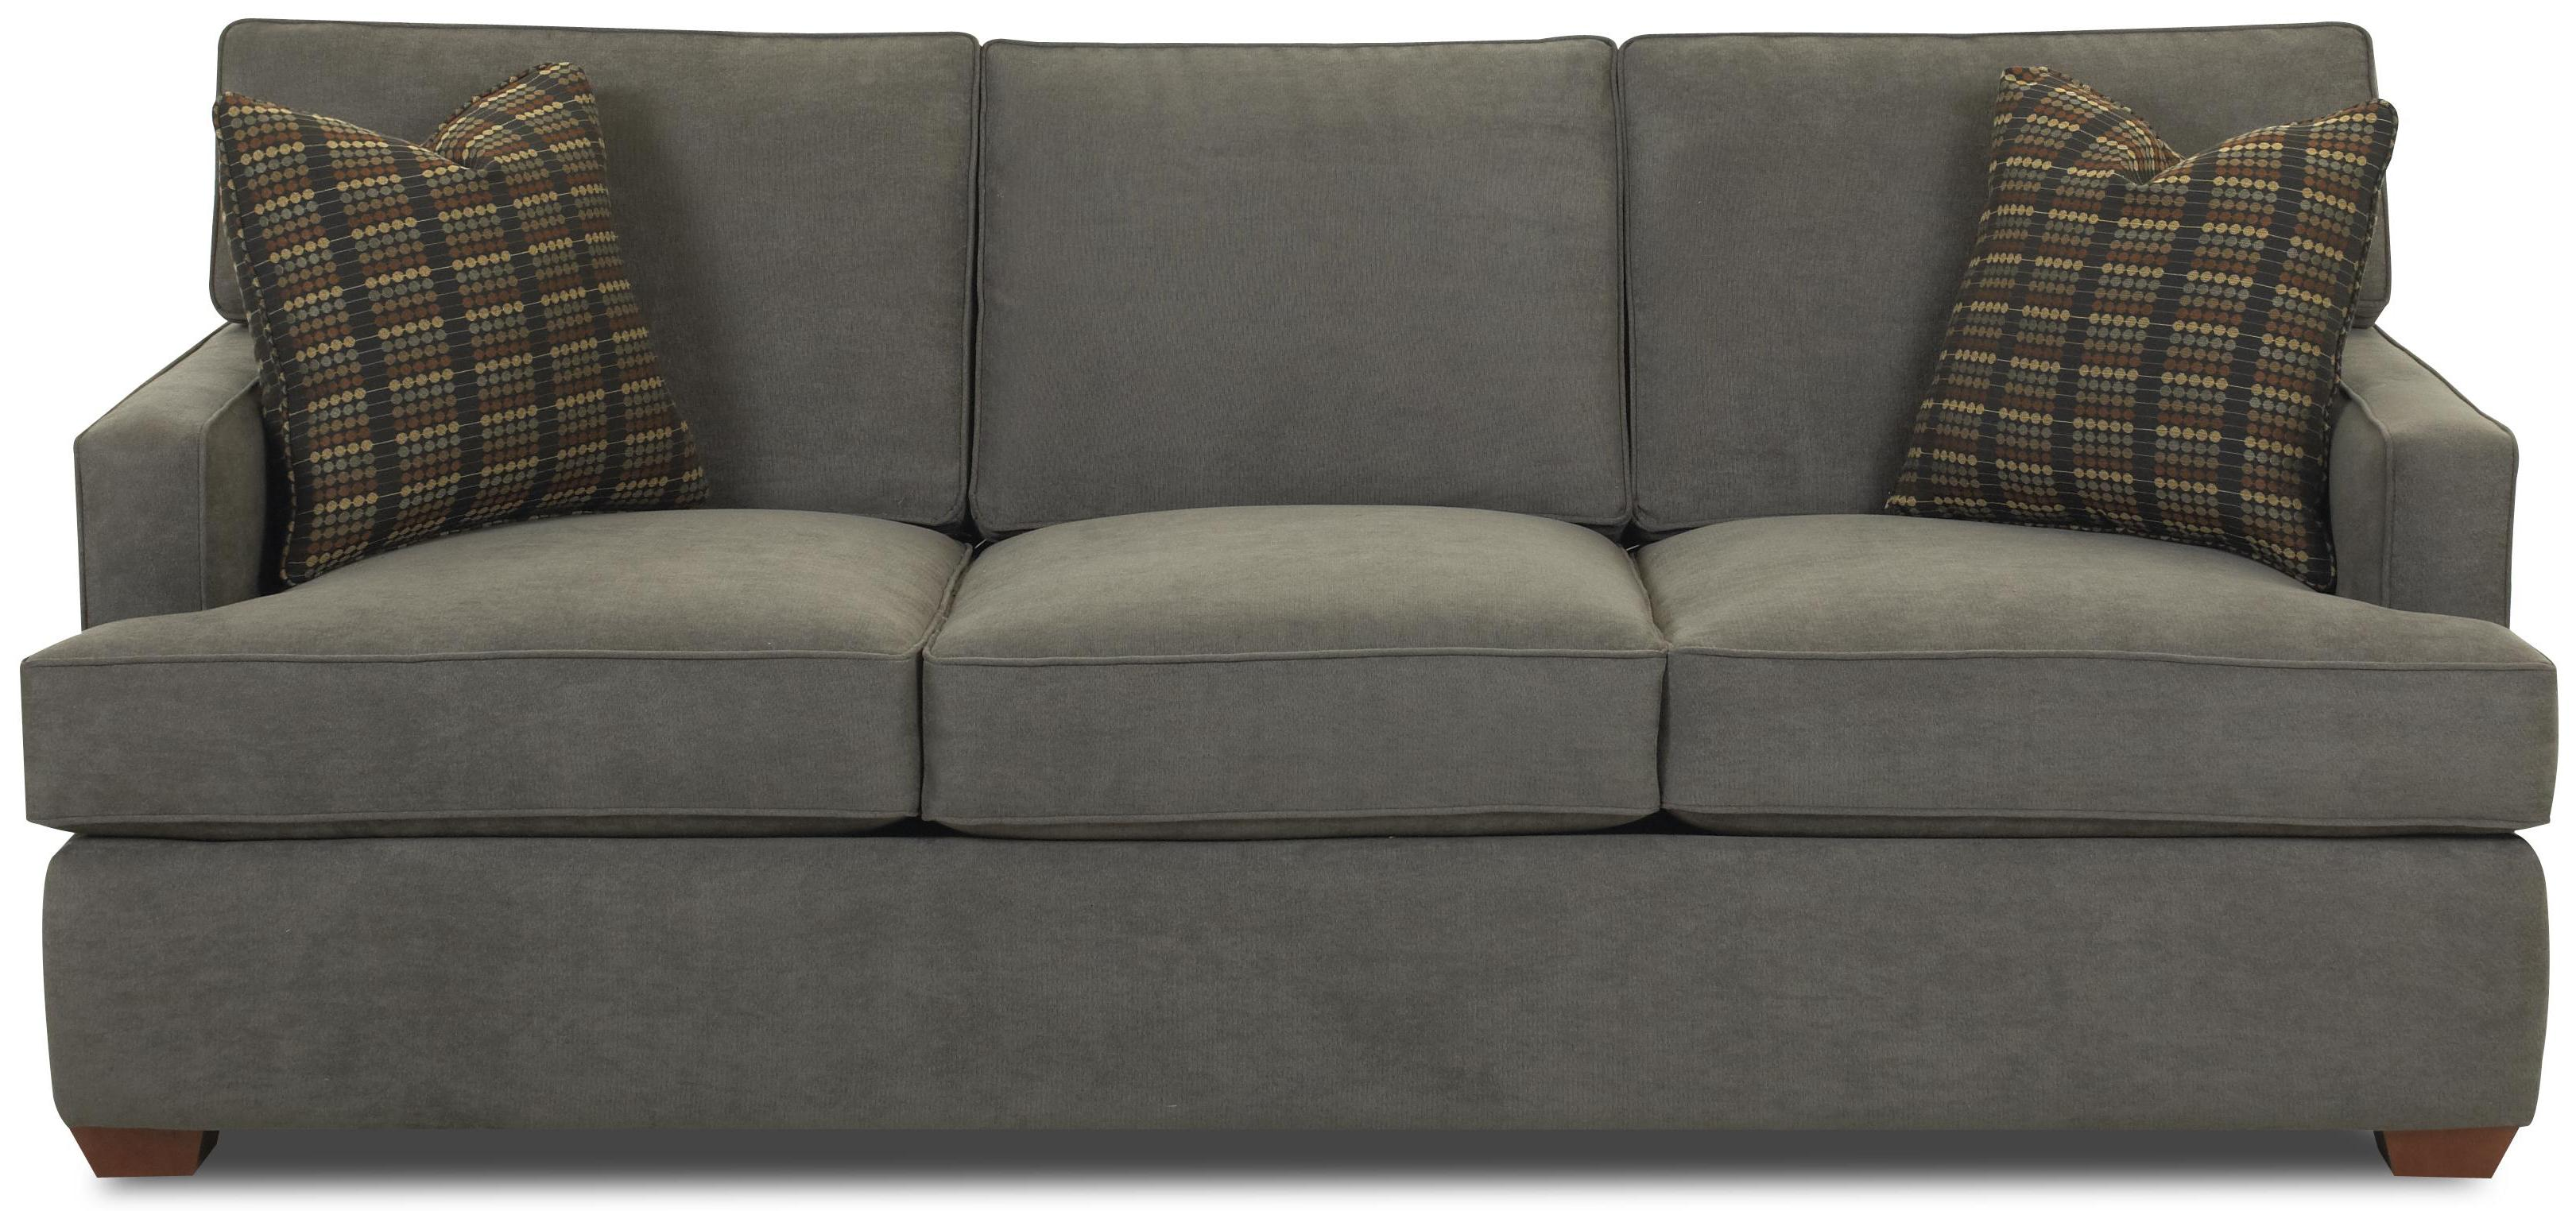 Loomis Innerspring Queen Sofa Sleeper by Klaussner at Van Hill Furniture